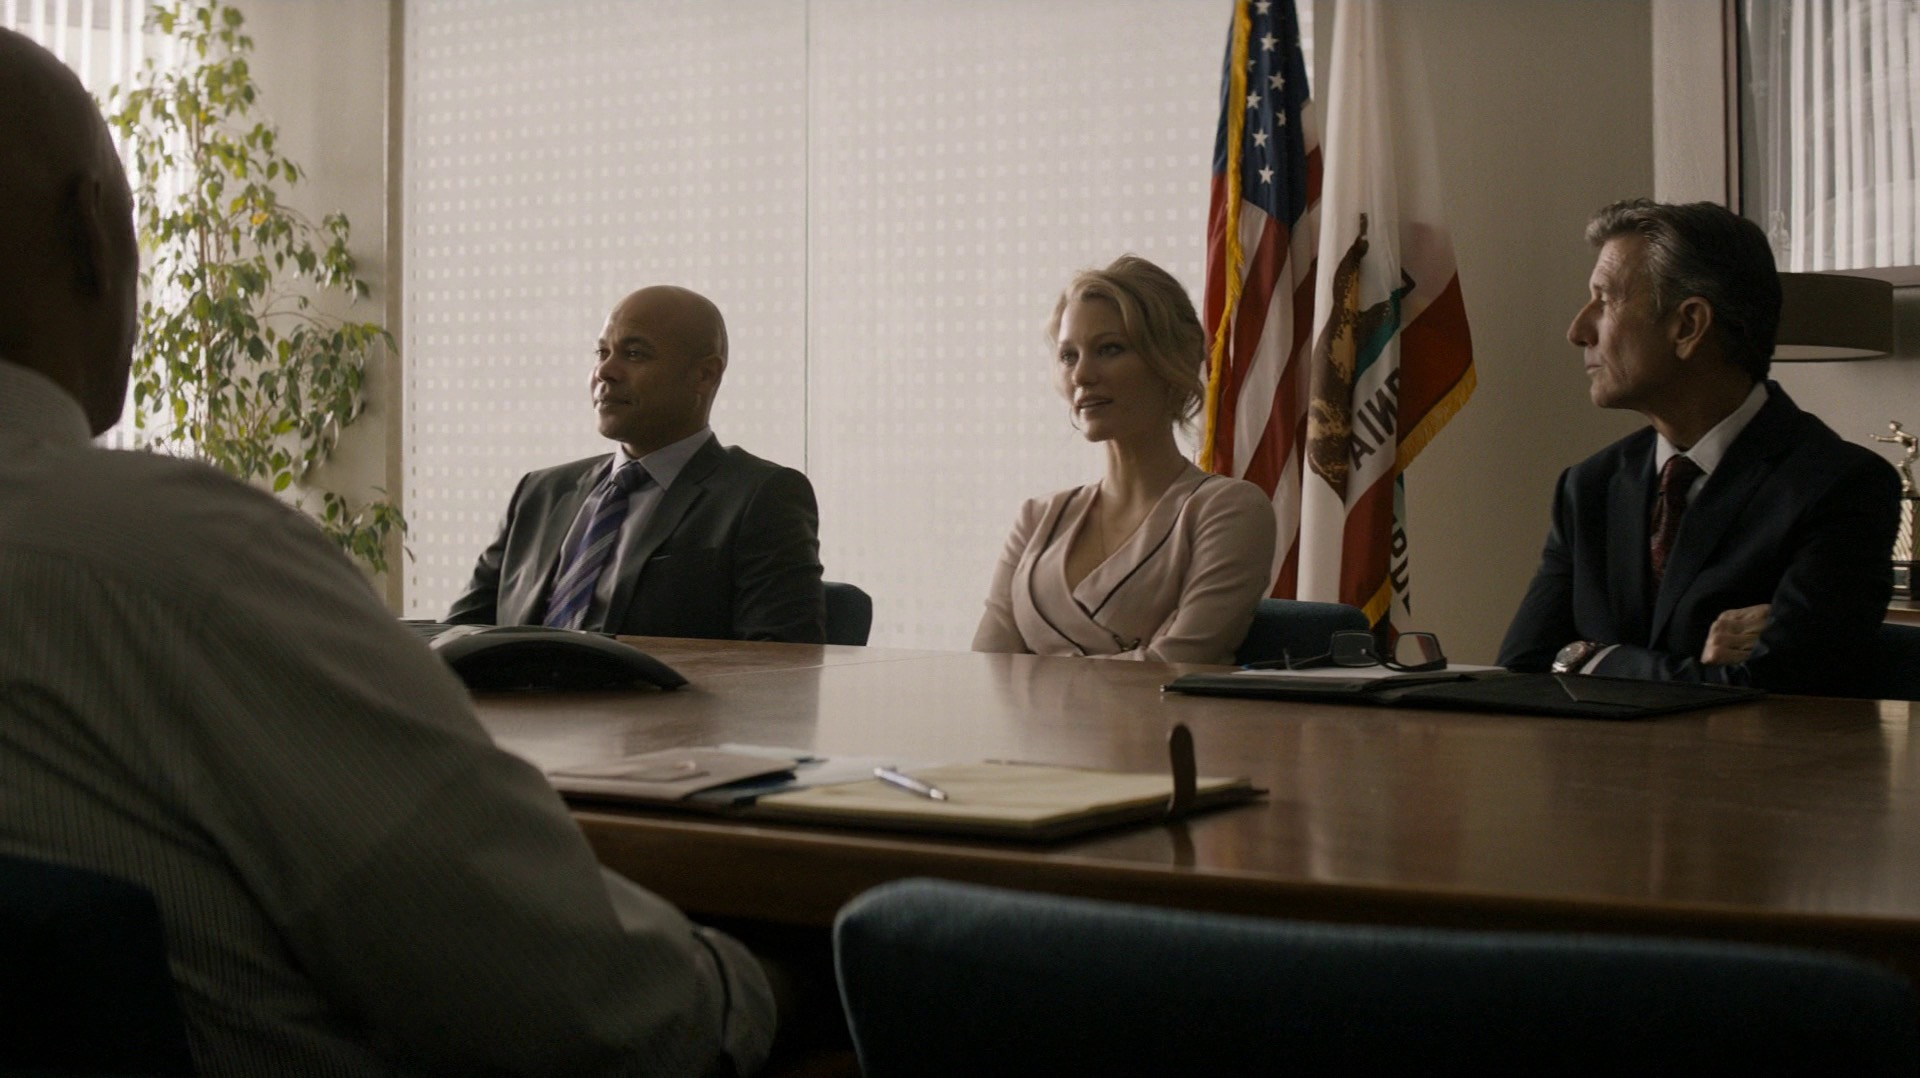 Lacey Lindel and her attorneys